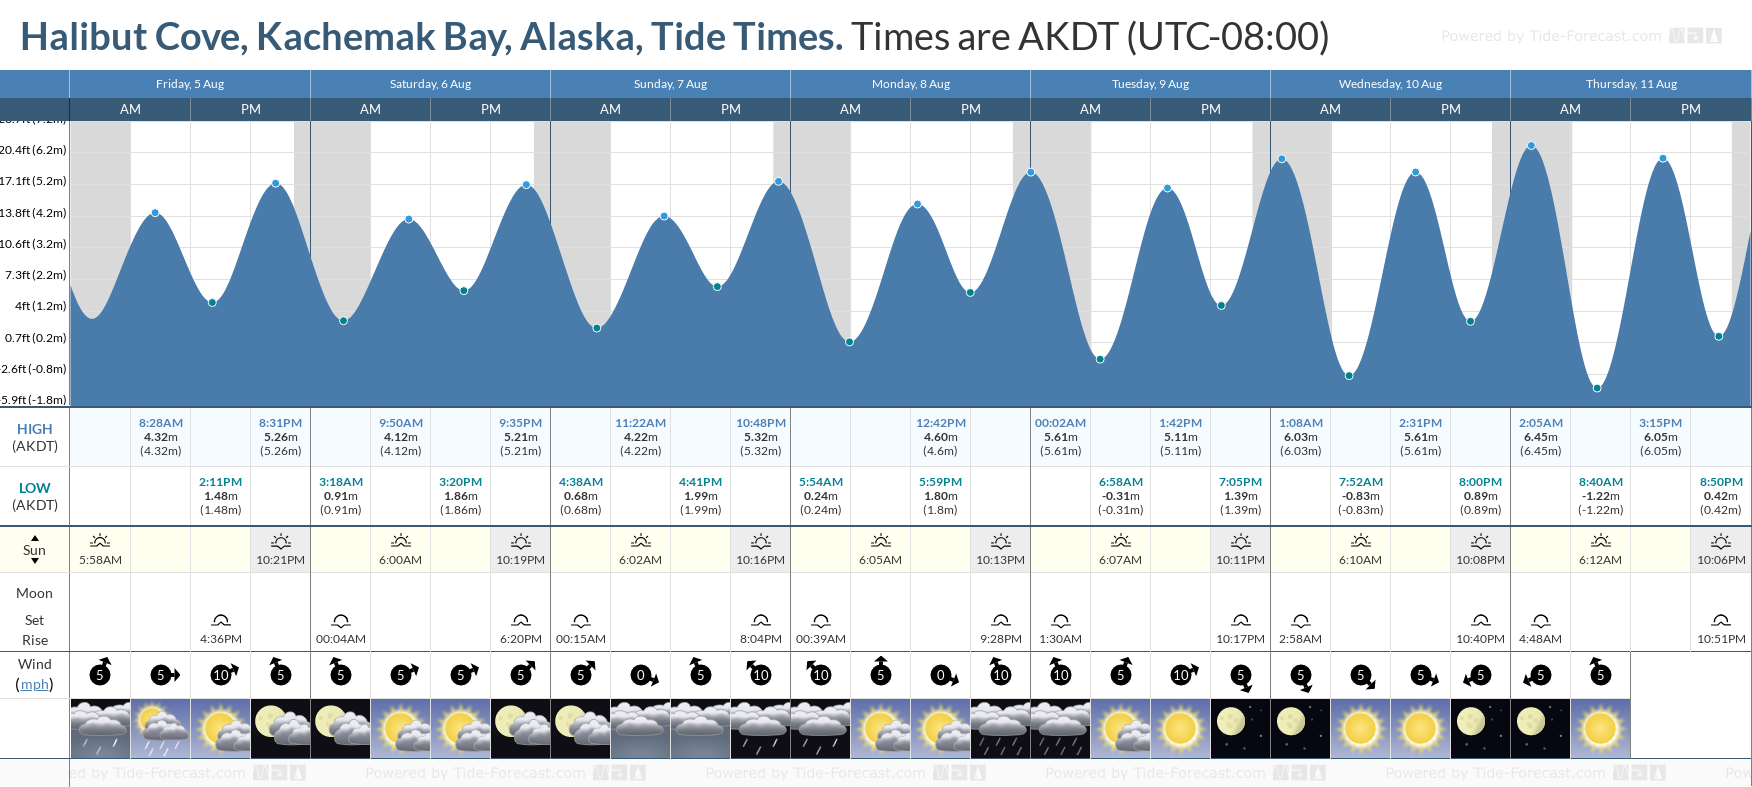 Halibut Cove, Kachemak Bay, Alaska Tide Chart including high and low tide tide times for the next 7 days